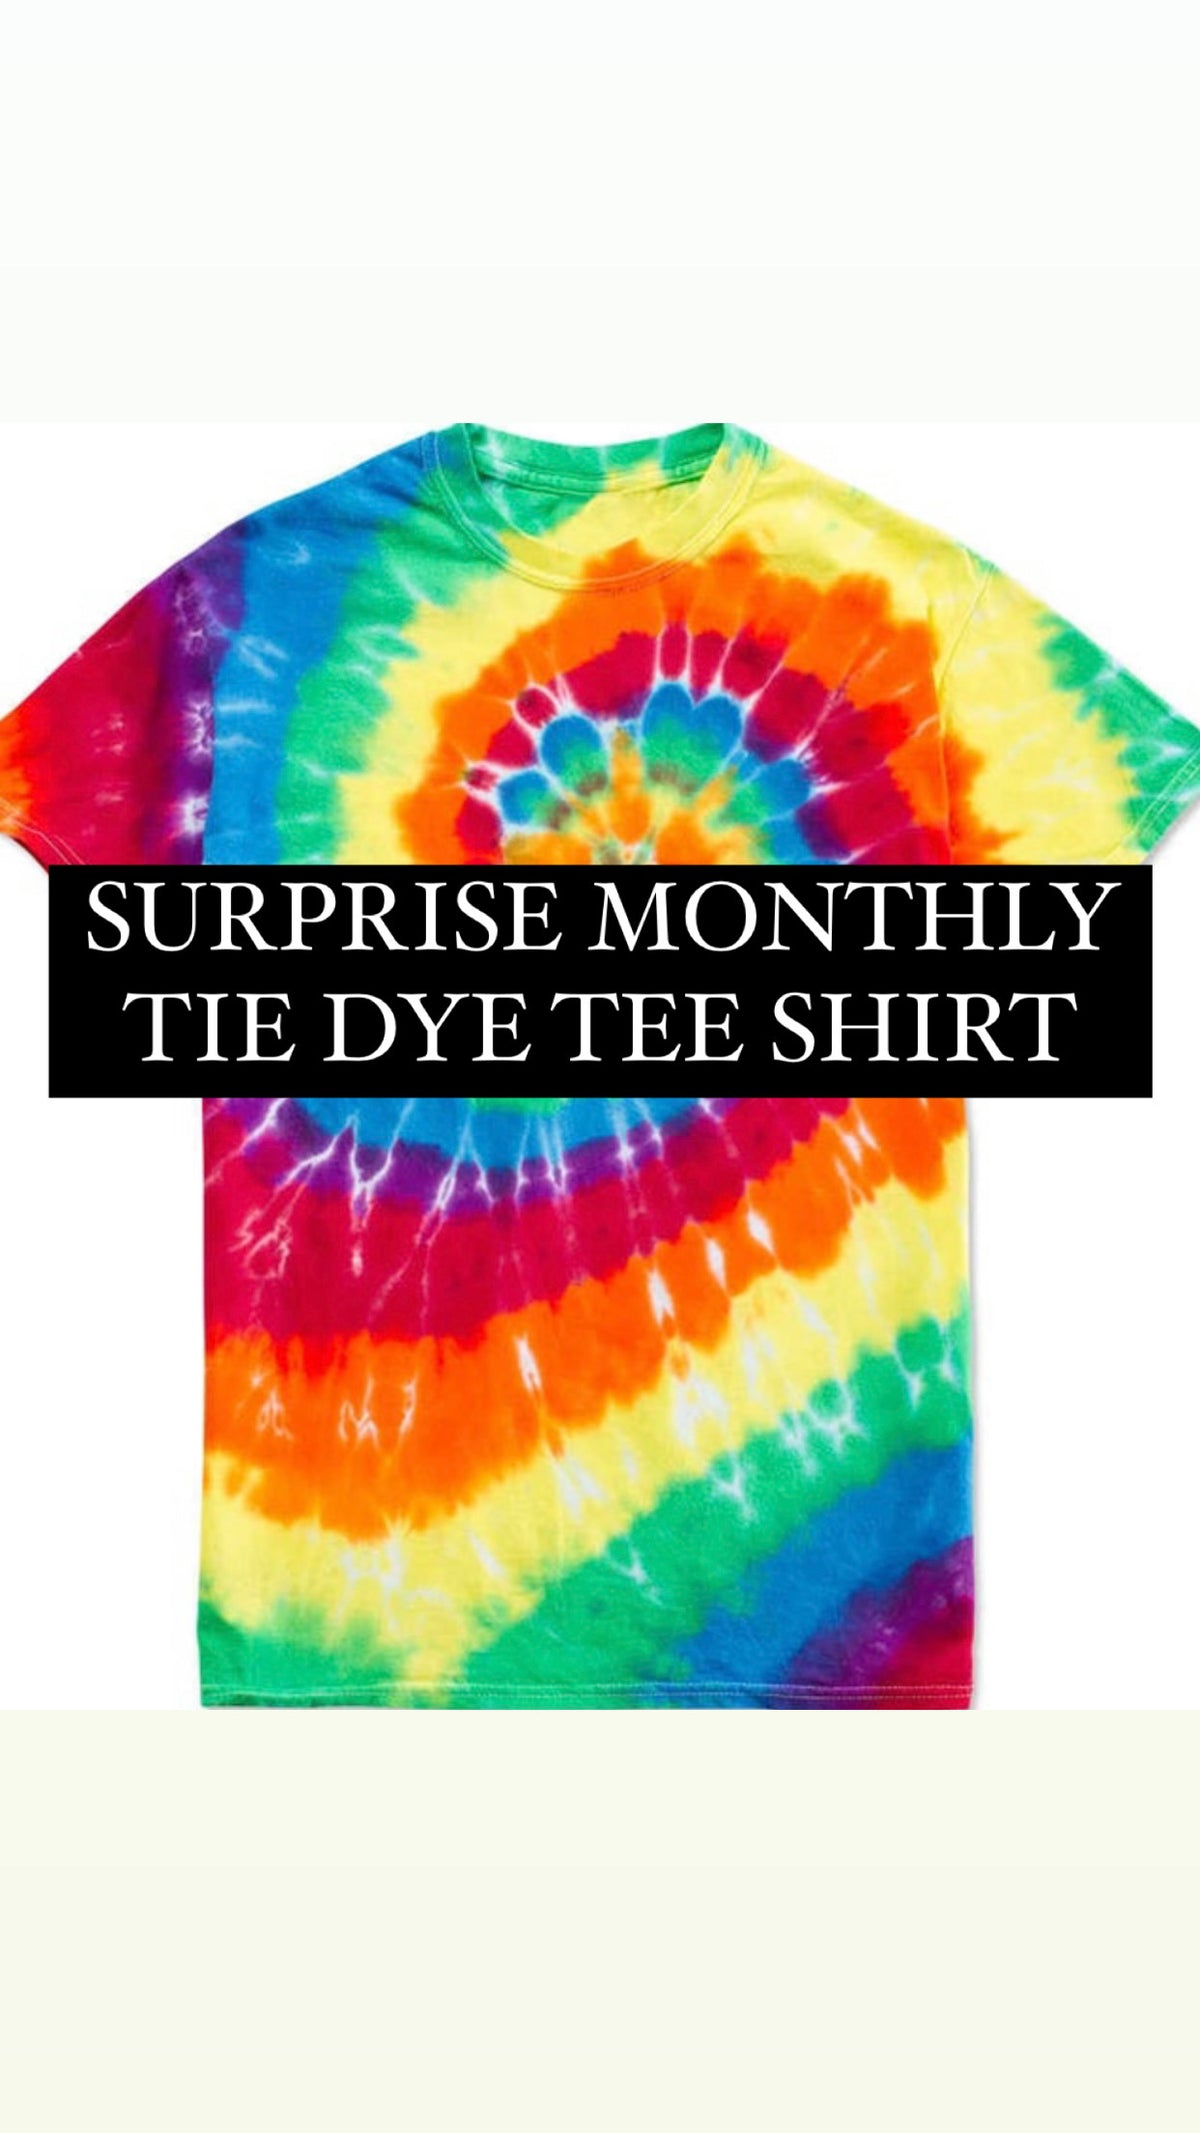 Surprise Monthly Tie Dye Tee Shirt